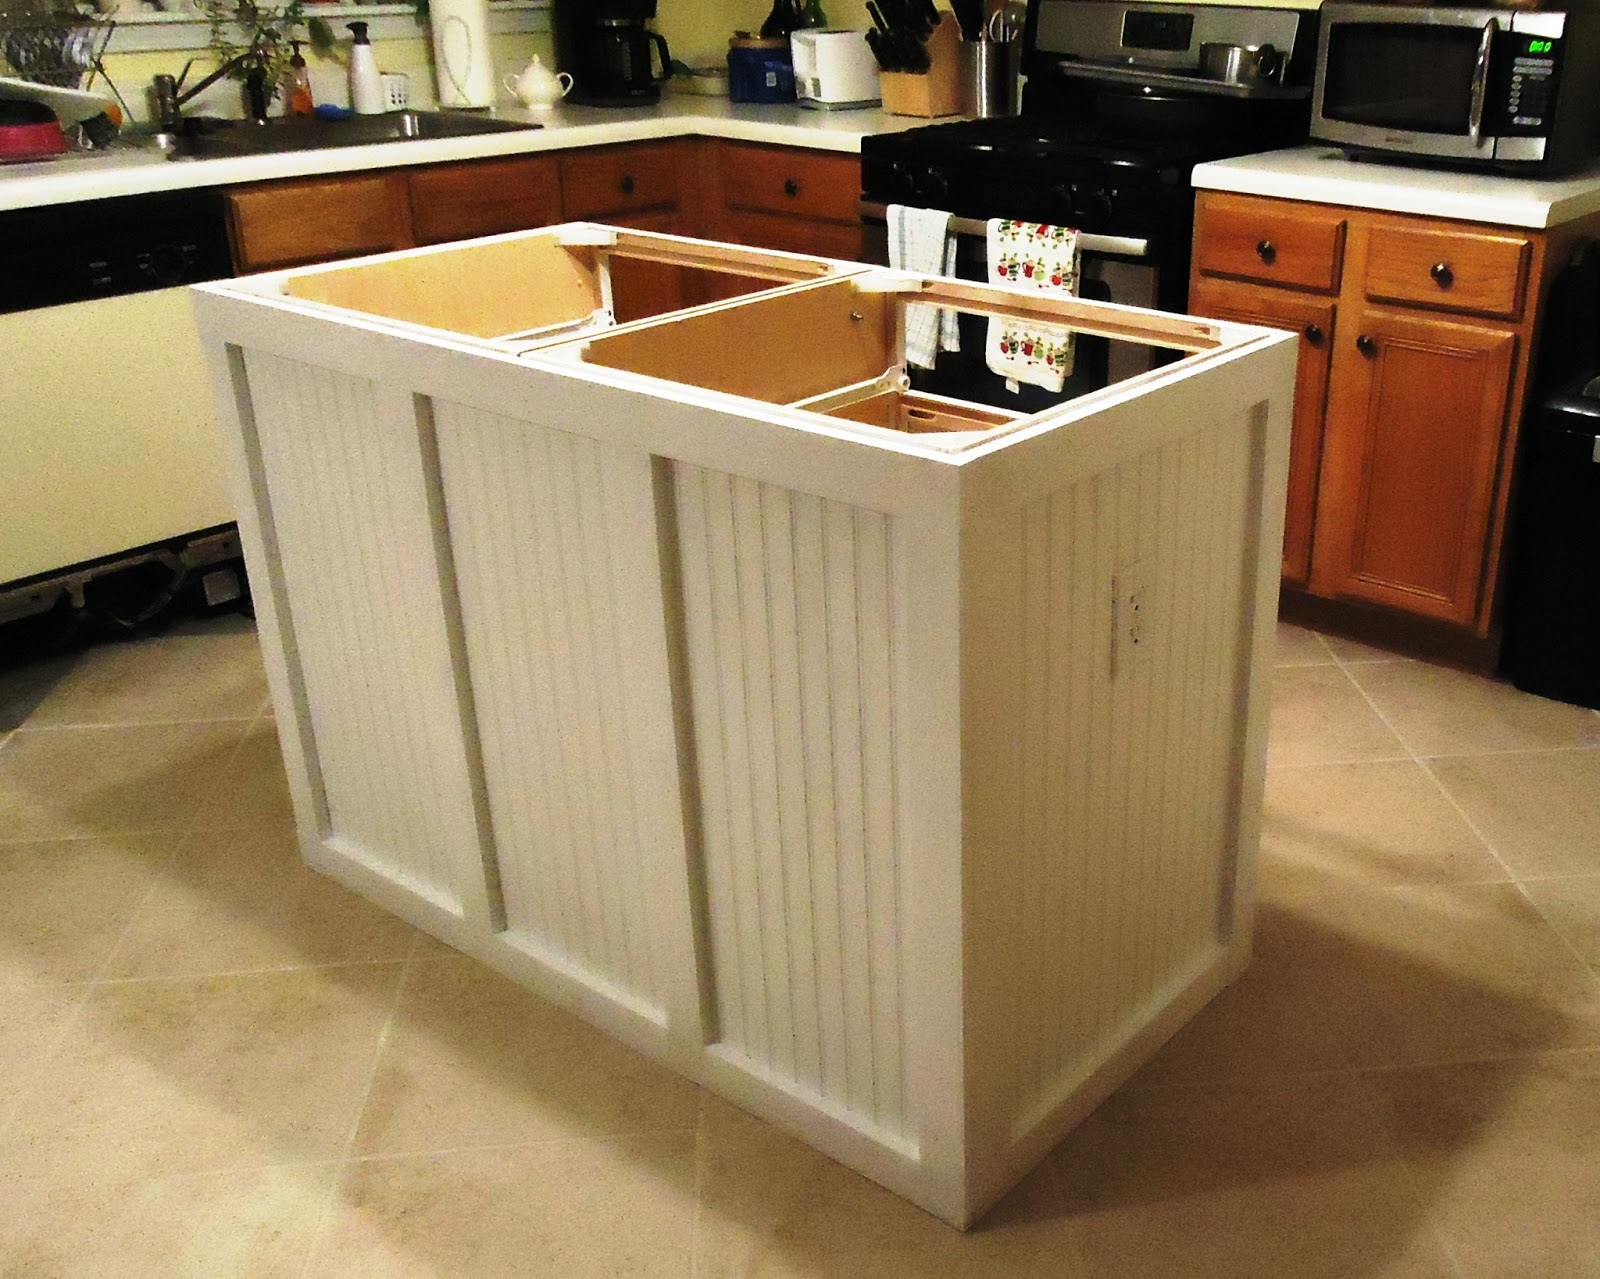 walking to retirement : the diy kitchen island